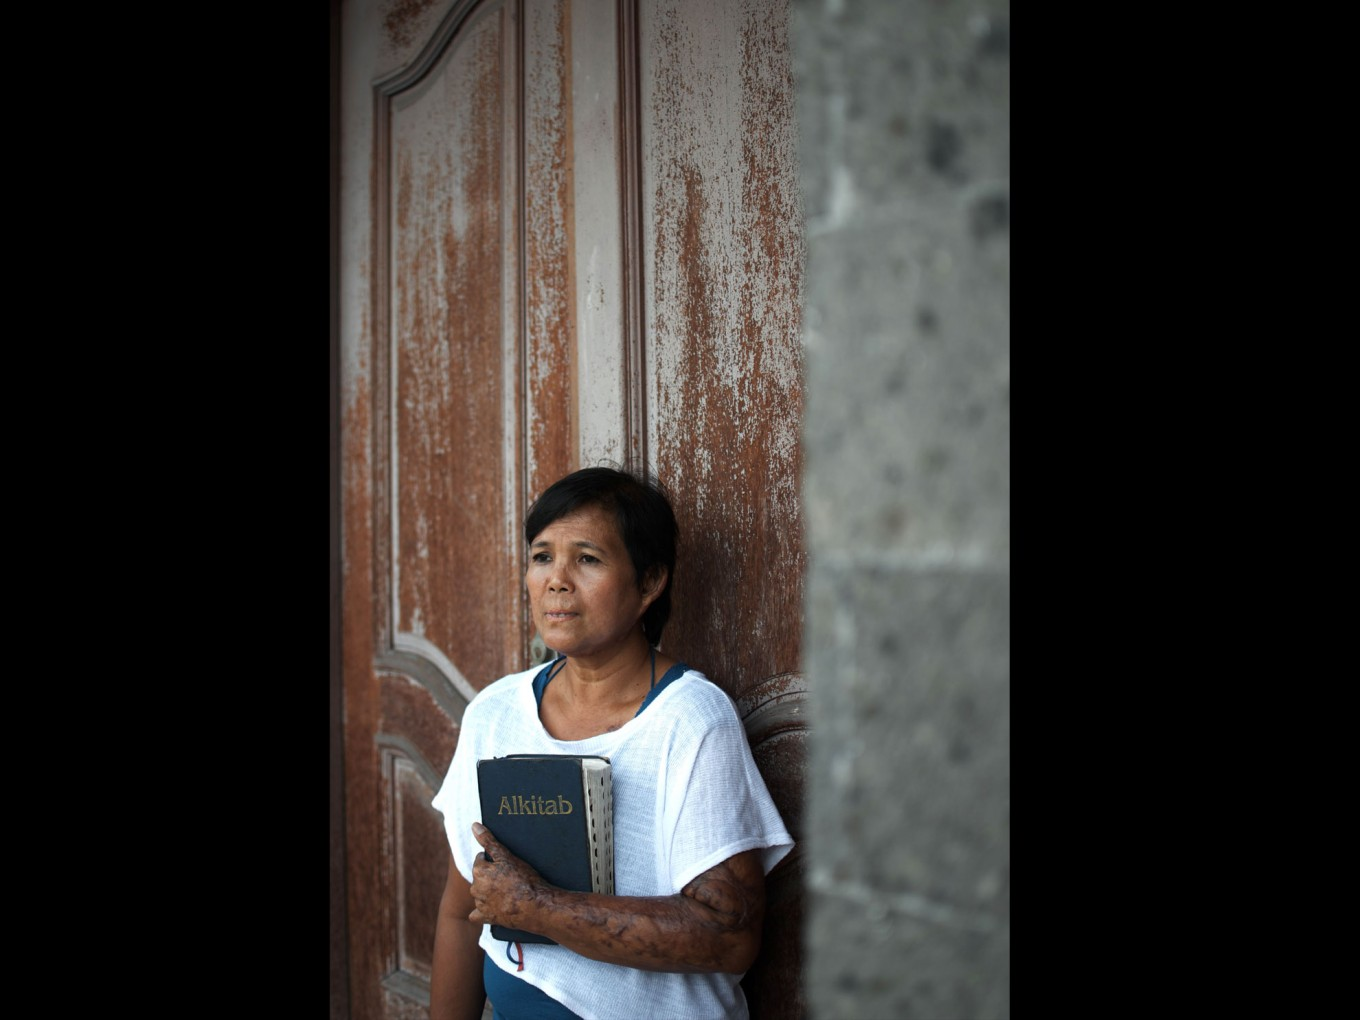 Yayuk on July 2, 2012 posing with a Bible. She converted to Christianity from Islam after the bombing. JP/ Anggara Mahendra